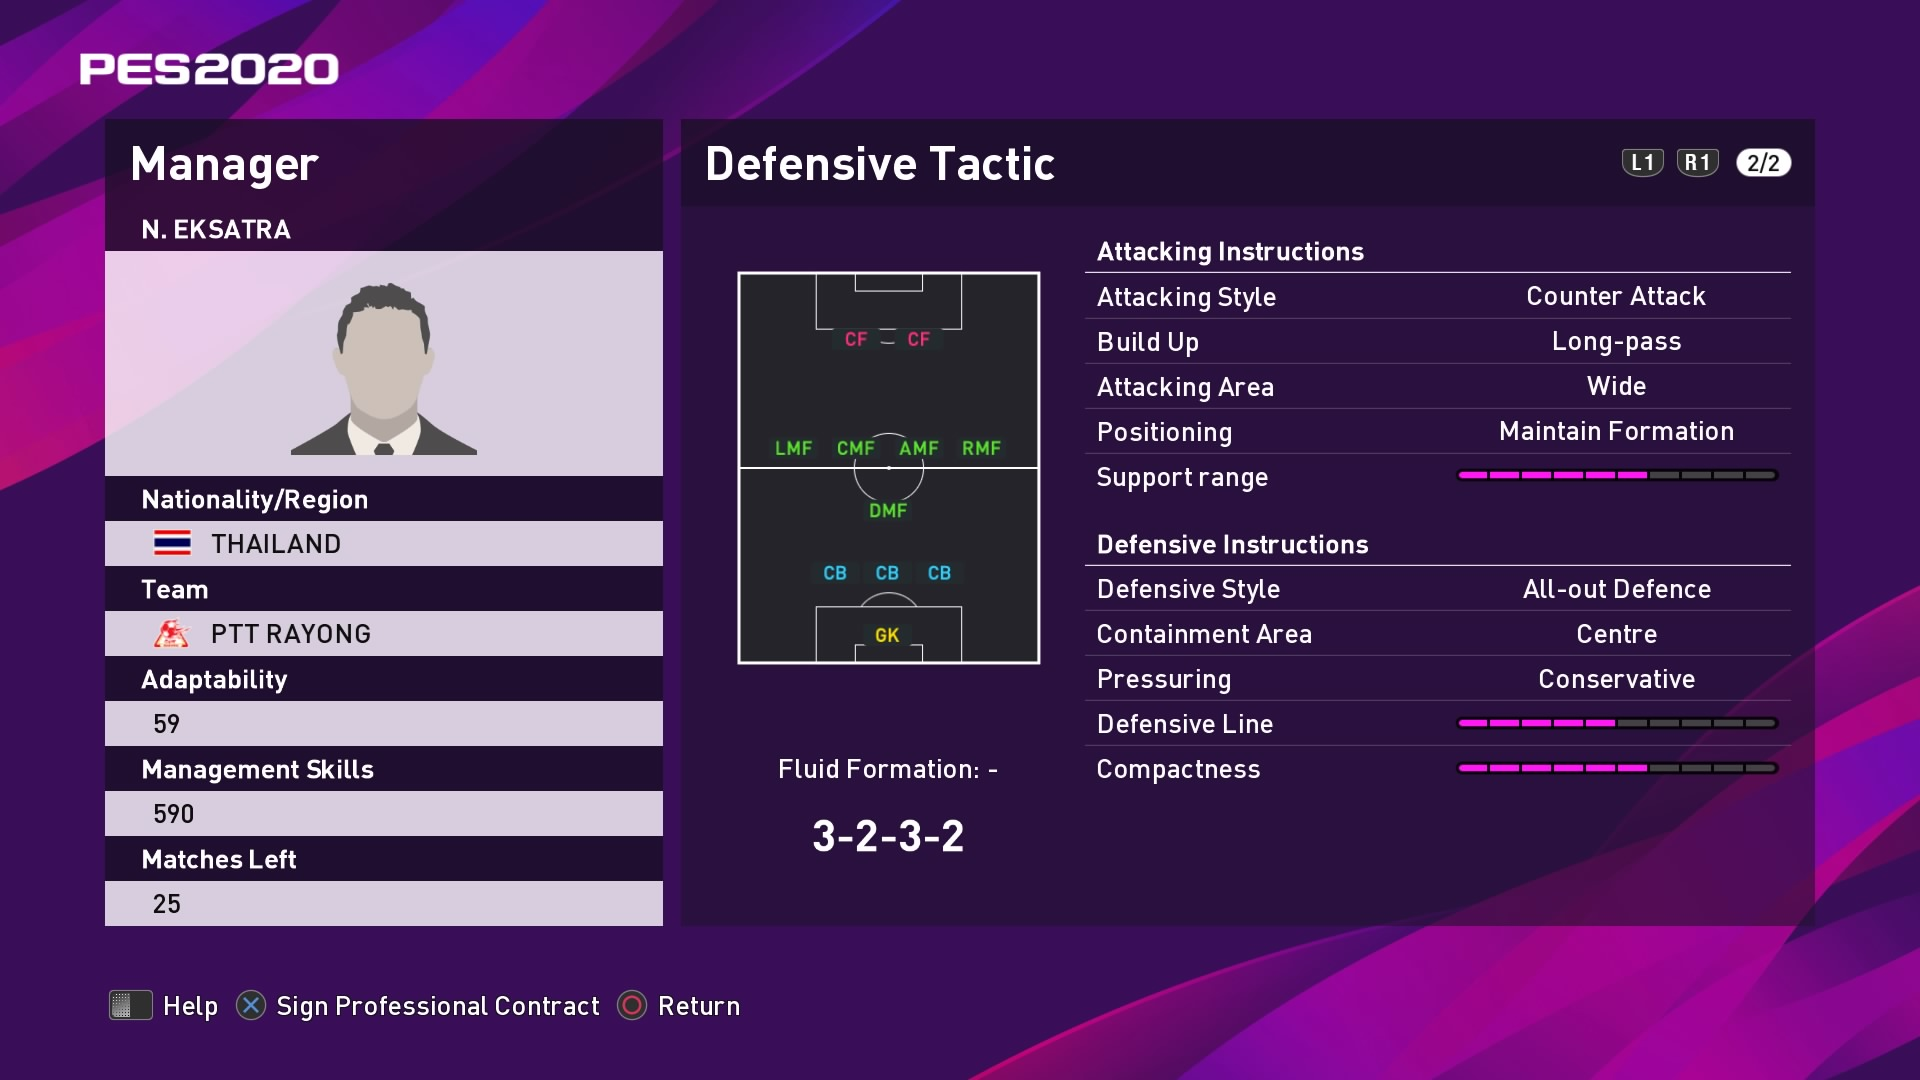 N. Eksatra (Wichanchai Hasap) Defensive Tactic in PES 2020 myClub